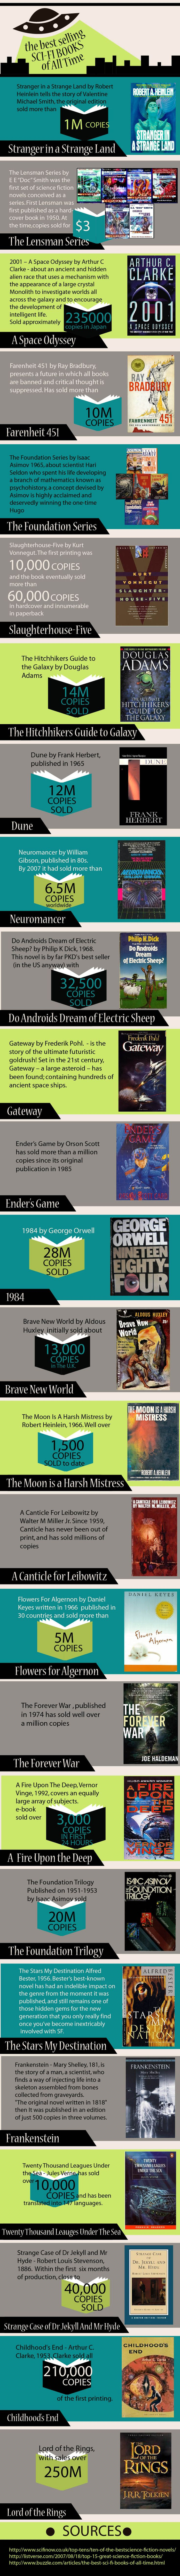 Best selling sci-fi novels of all time